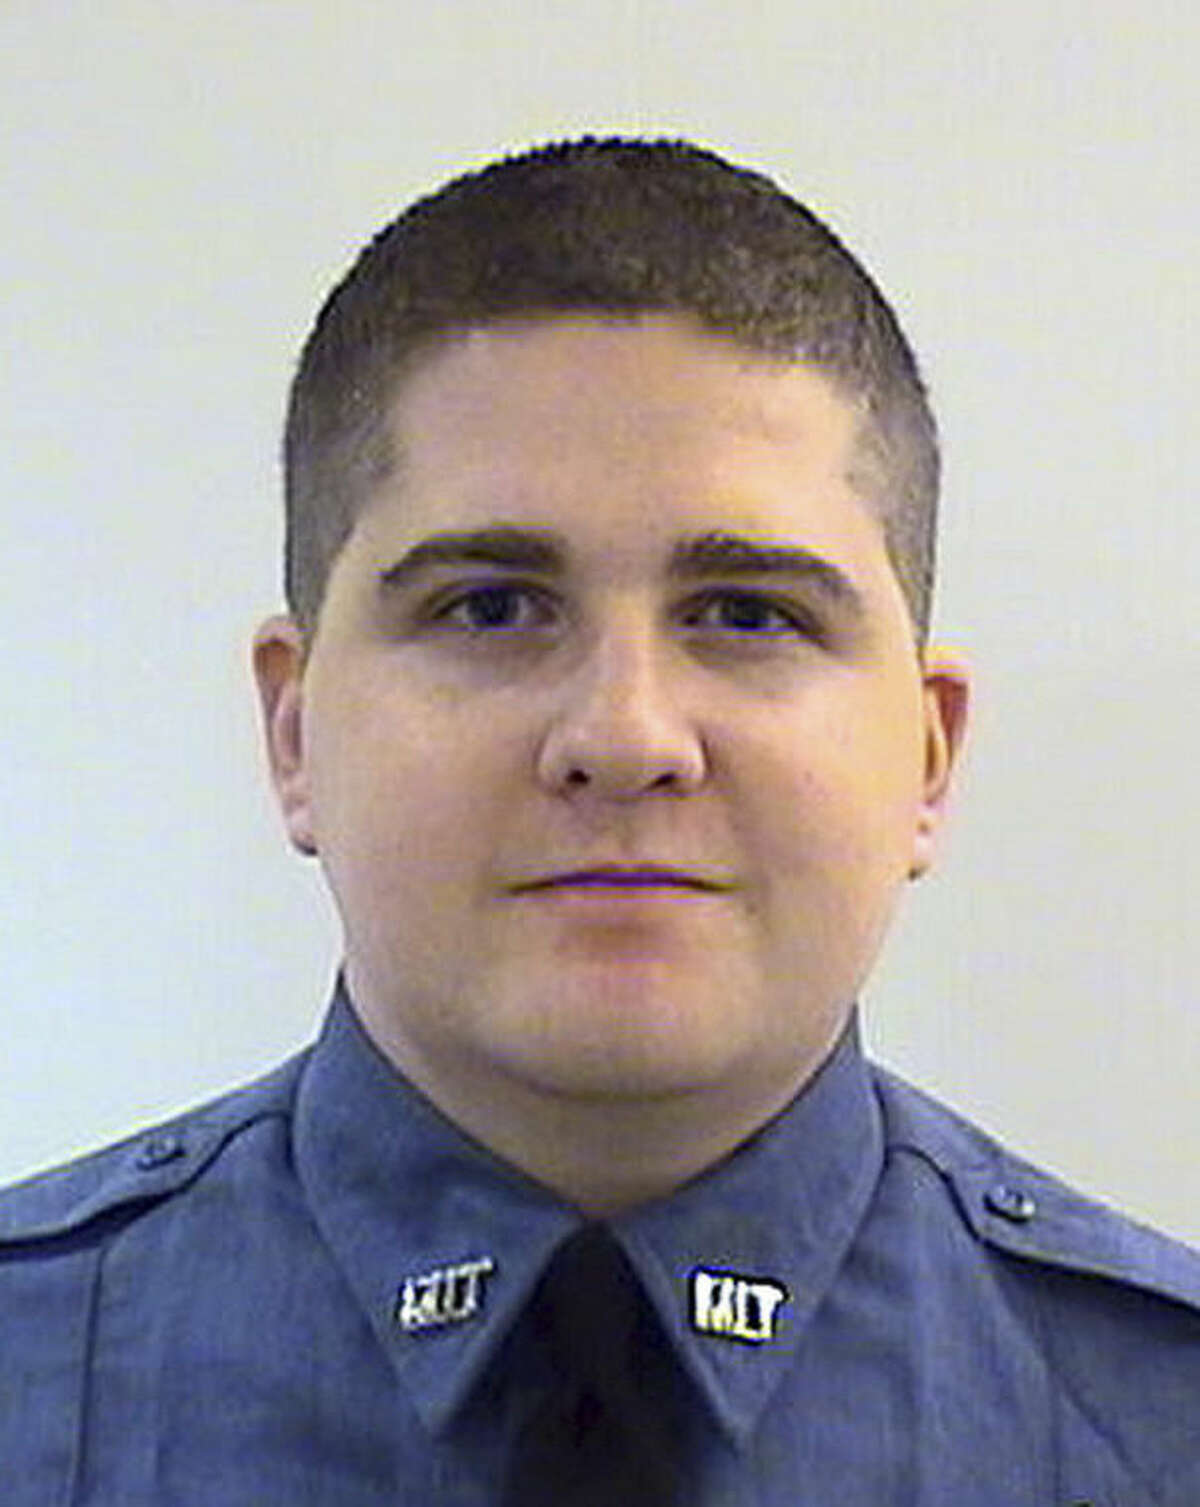 This undated photo provided by the Middlesex District Attorney's Office shows Massachusetts Institute of Technology Police Officer Sean Collier, 26, of Somerville, Mass., who was shot to death Thursday, April 18, 2013 on the school campus in Cambridge, Mass. Thousands of MIT students, faculty and staff as well as law enforcement officials from across the nation are expected to attend a memorial service for fallen campus police officer Sean Collier. MIT officials say they are expecting as many as 10,000 people at the service at Briggs Field on Wednesday, April 24, 2013. (AP Photo/Middlesex District Attorney's Office)